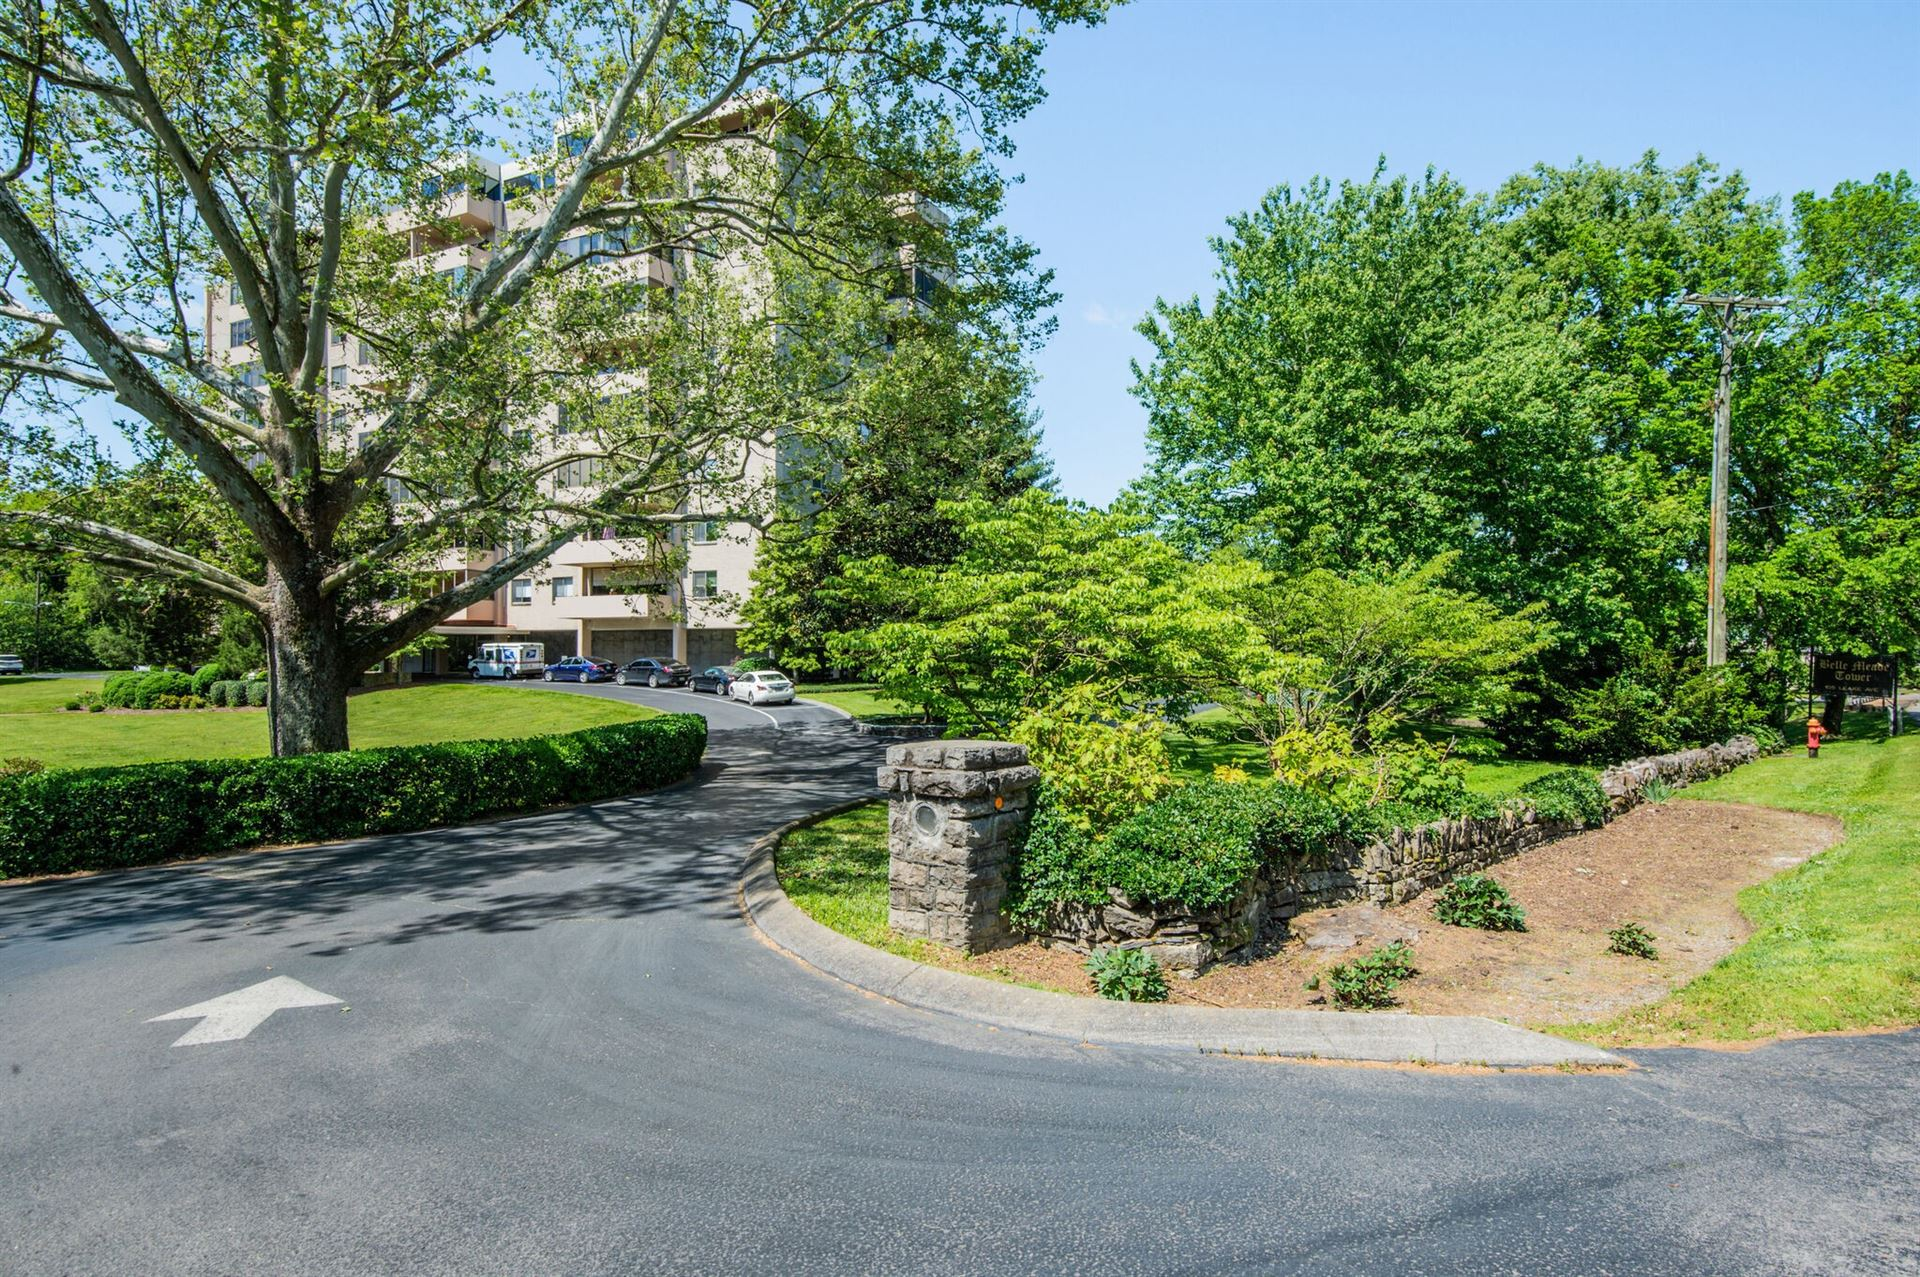 Photo of 105 Leake Ave #62, Nashville, TN 37205 (MLS # 2173694)